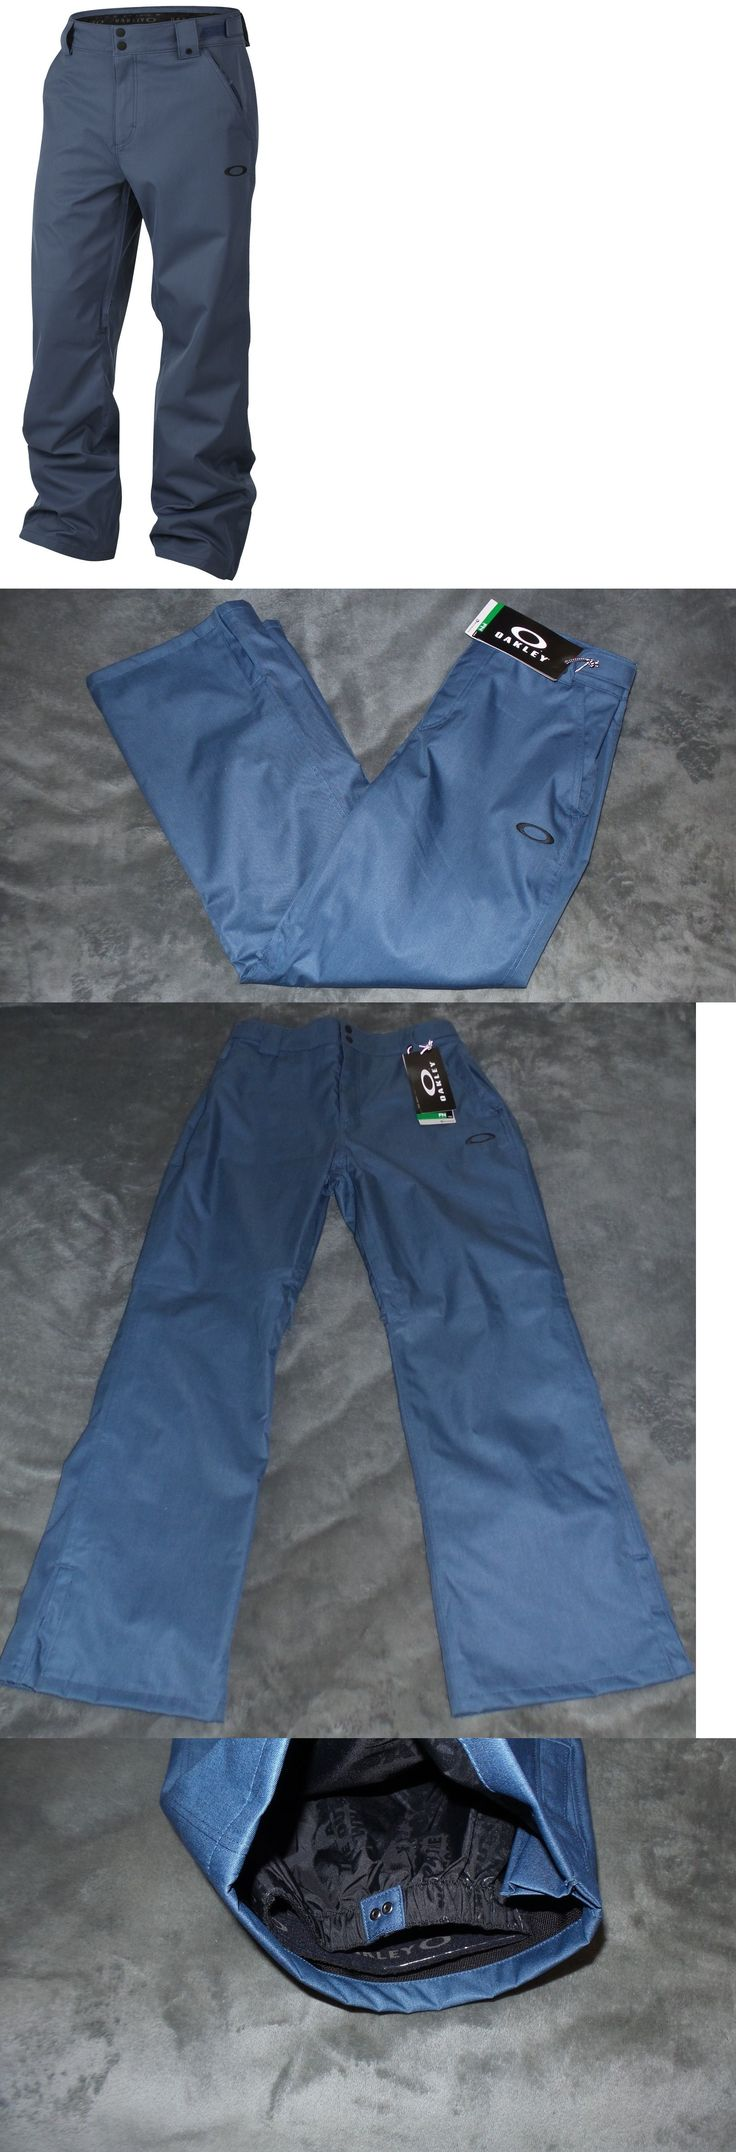 Snow Pants and Bibs 36261: Oakley Sun King Bzs Biozone Ski/Snowboard Pants Mens Size Xl #422039 Blue Shade -> BUY IT NOW ONLY: $89.99 on eBay!